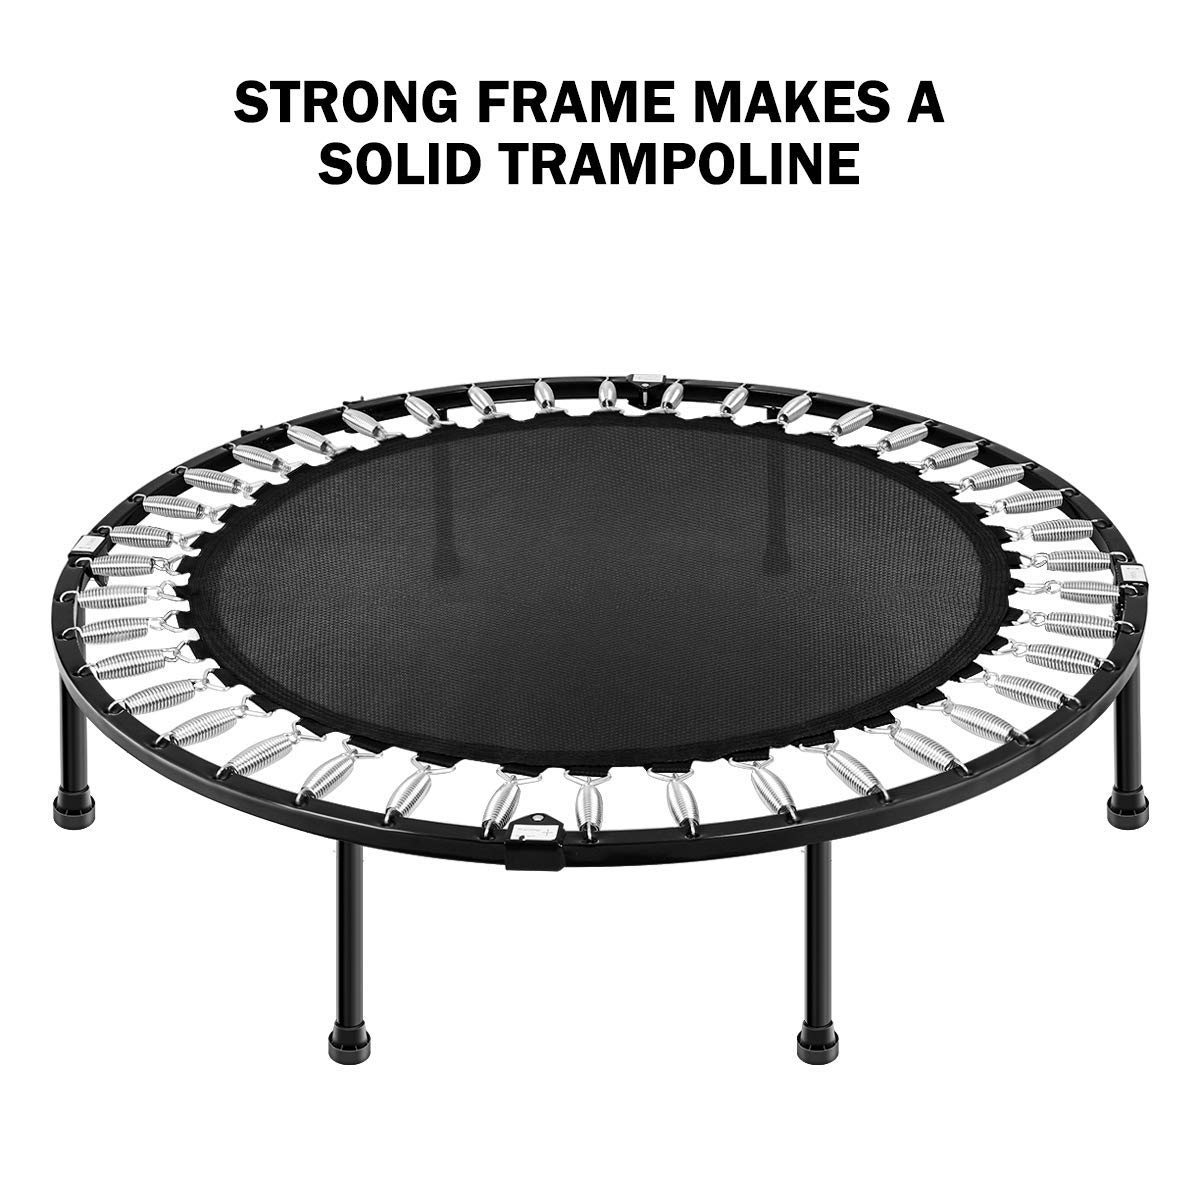 MOVTOTOP 48 40 Inch Indoor Trampoline, Folding Mini Trampoline with Adjustable Handrail and Safety Pad, Exercise Rebounder for Kids Adults-Black (40 Inch-Foldable) by MOVTOTOP (Image #4)